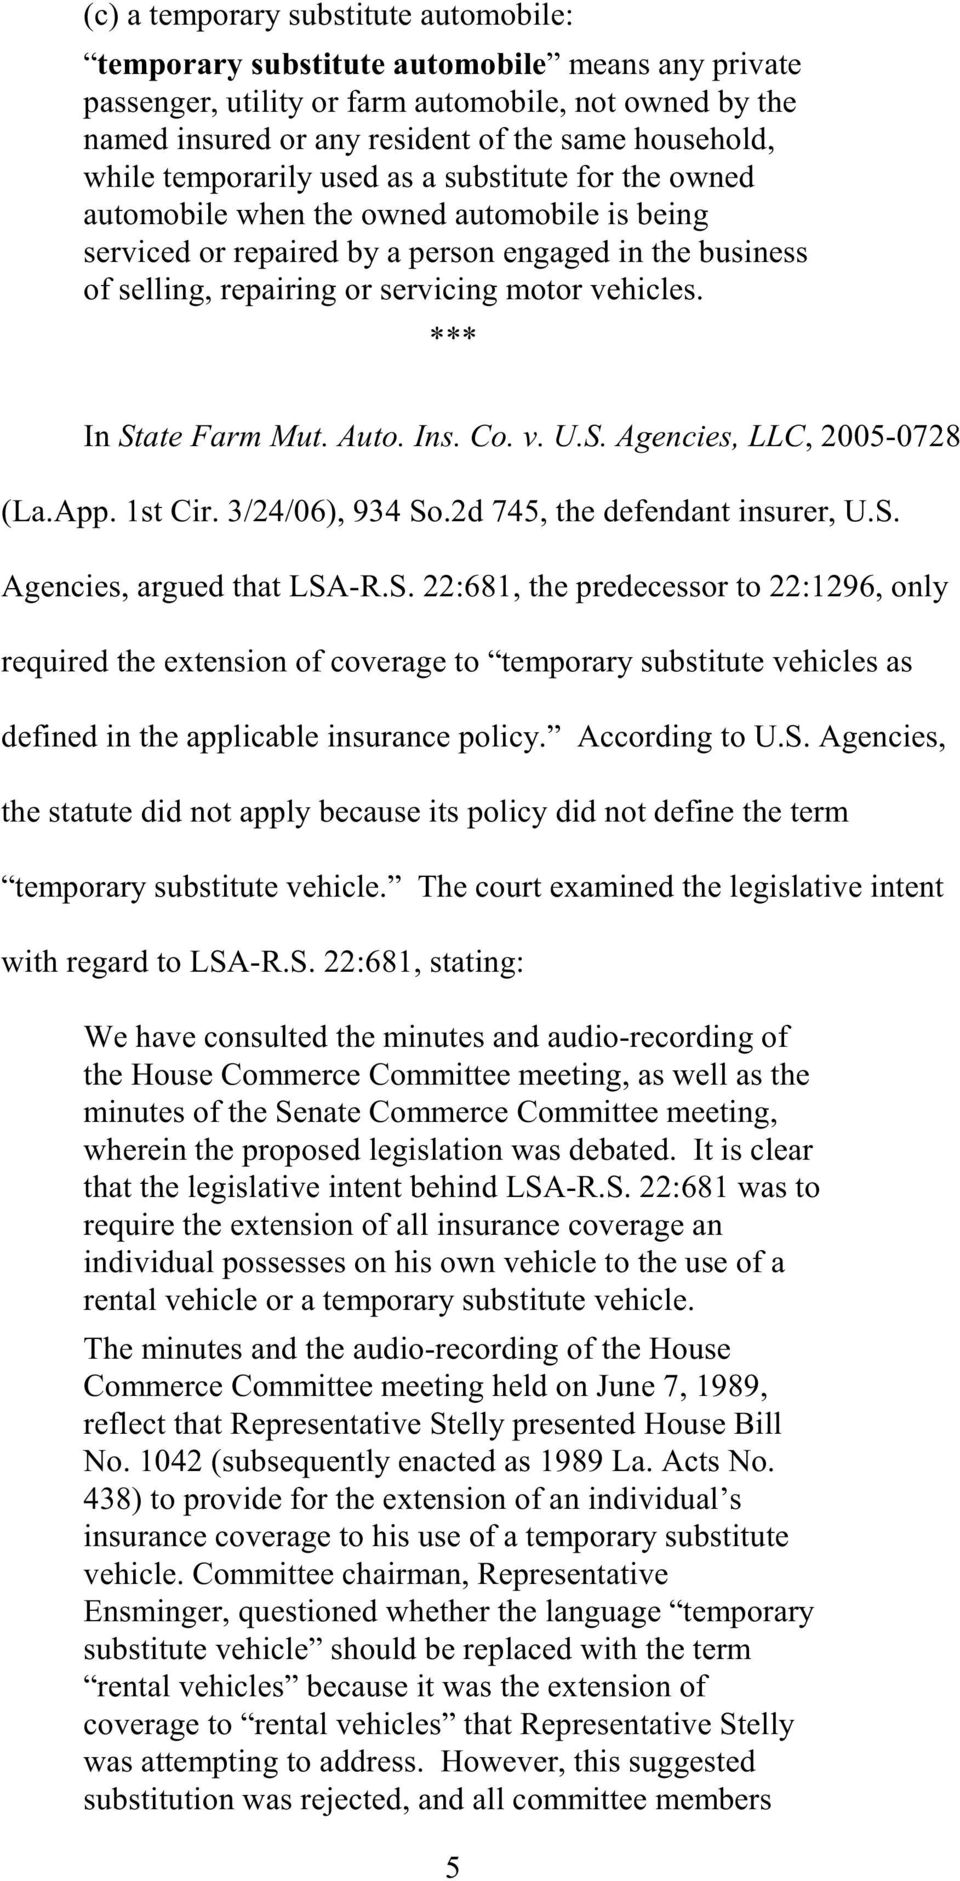 vehicles. In State Farm Mut. Auto. Ins. Co. v. U.S. Agencies, LLC, 2005-0728 (La.App. 1st Cir. 3/24/06), 934 So.2d 745, the defendant insurer, U.S. Agencies, argued that LSA-R.S. 22:681, the predecessor to 22:1296, only required the extension of coverage to temporary substitute vehicles as defined in the applicable insurance policy.